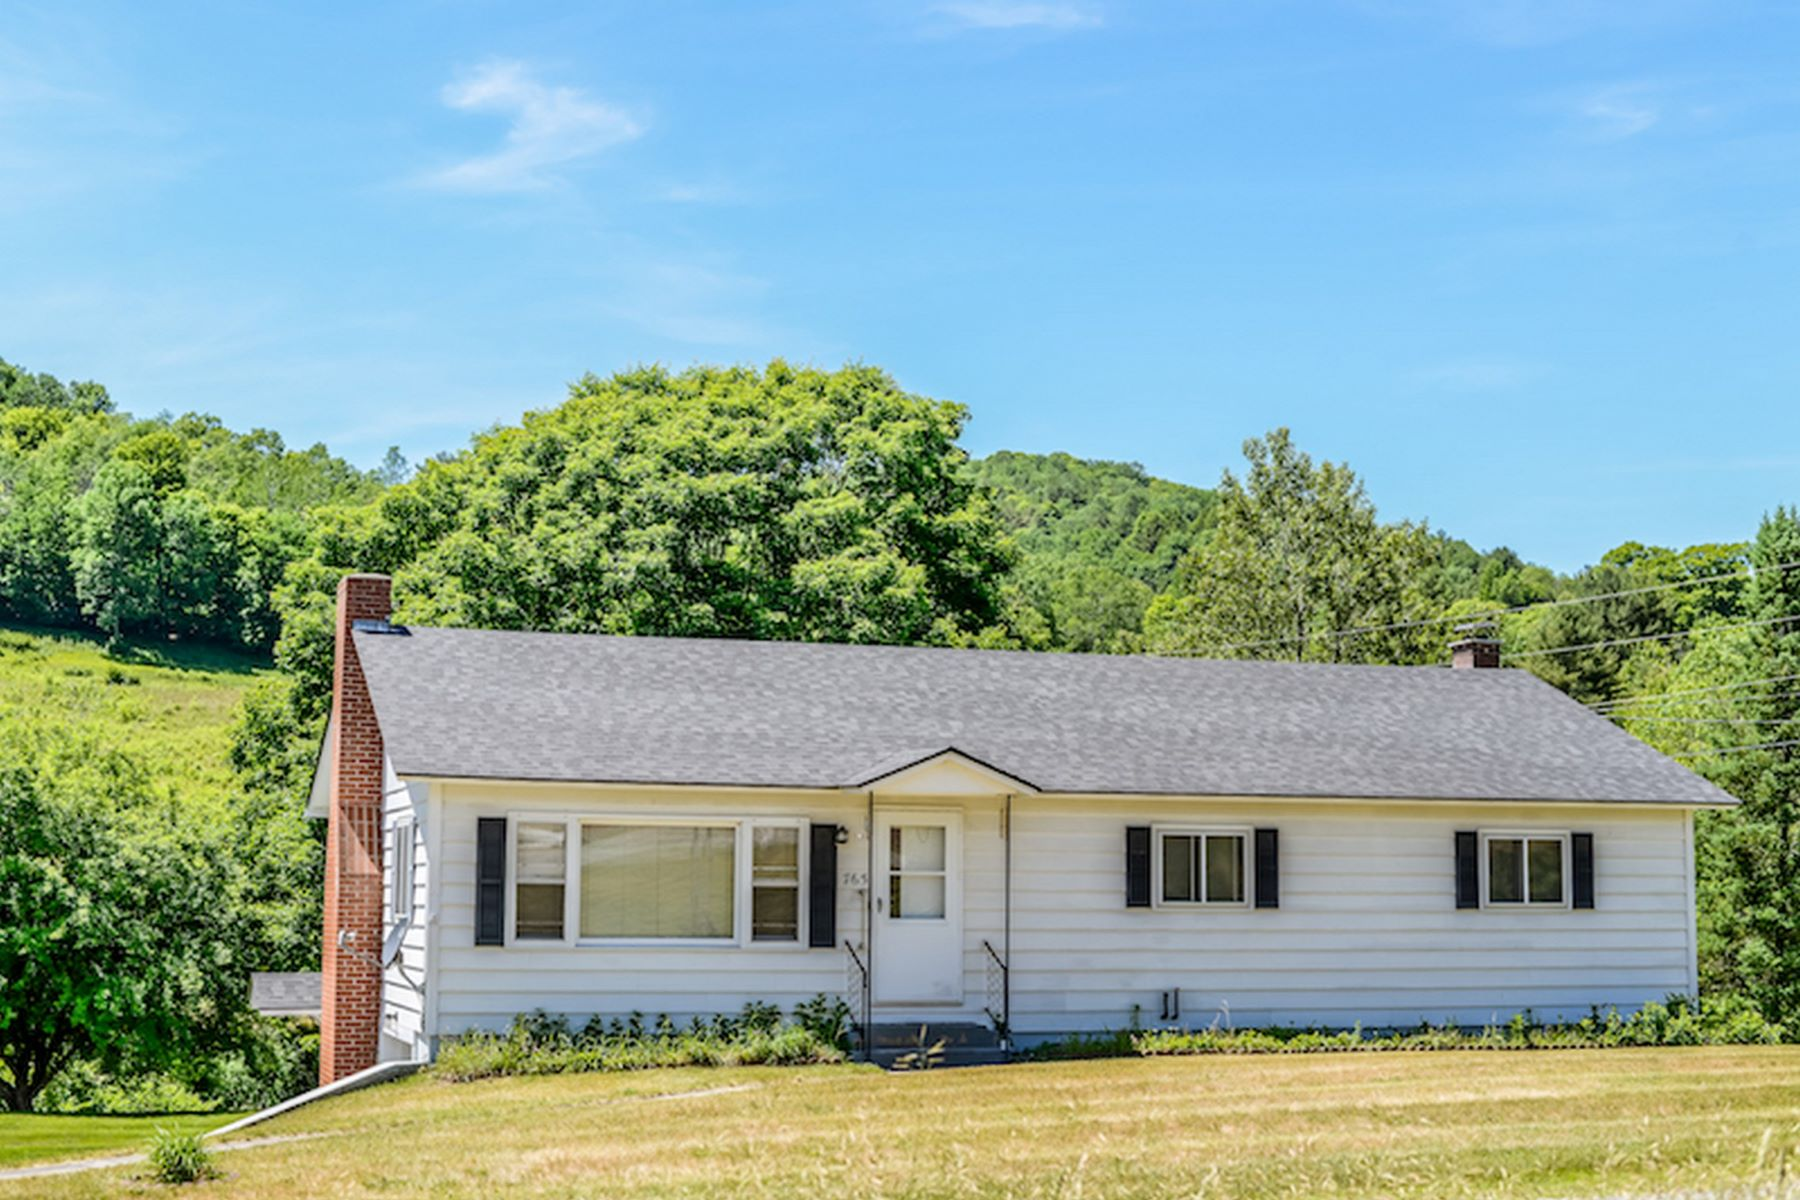 Single Family Home for Sale at Four Bedroom Ranch in East Corinth 765 Village Rd Corinth, Vermont 05039 United States